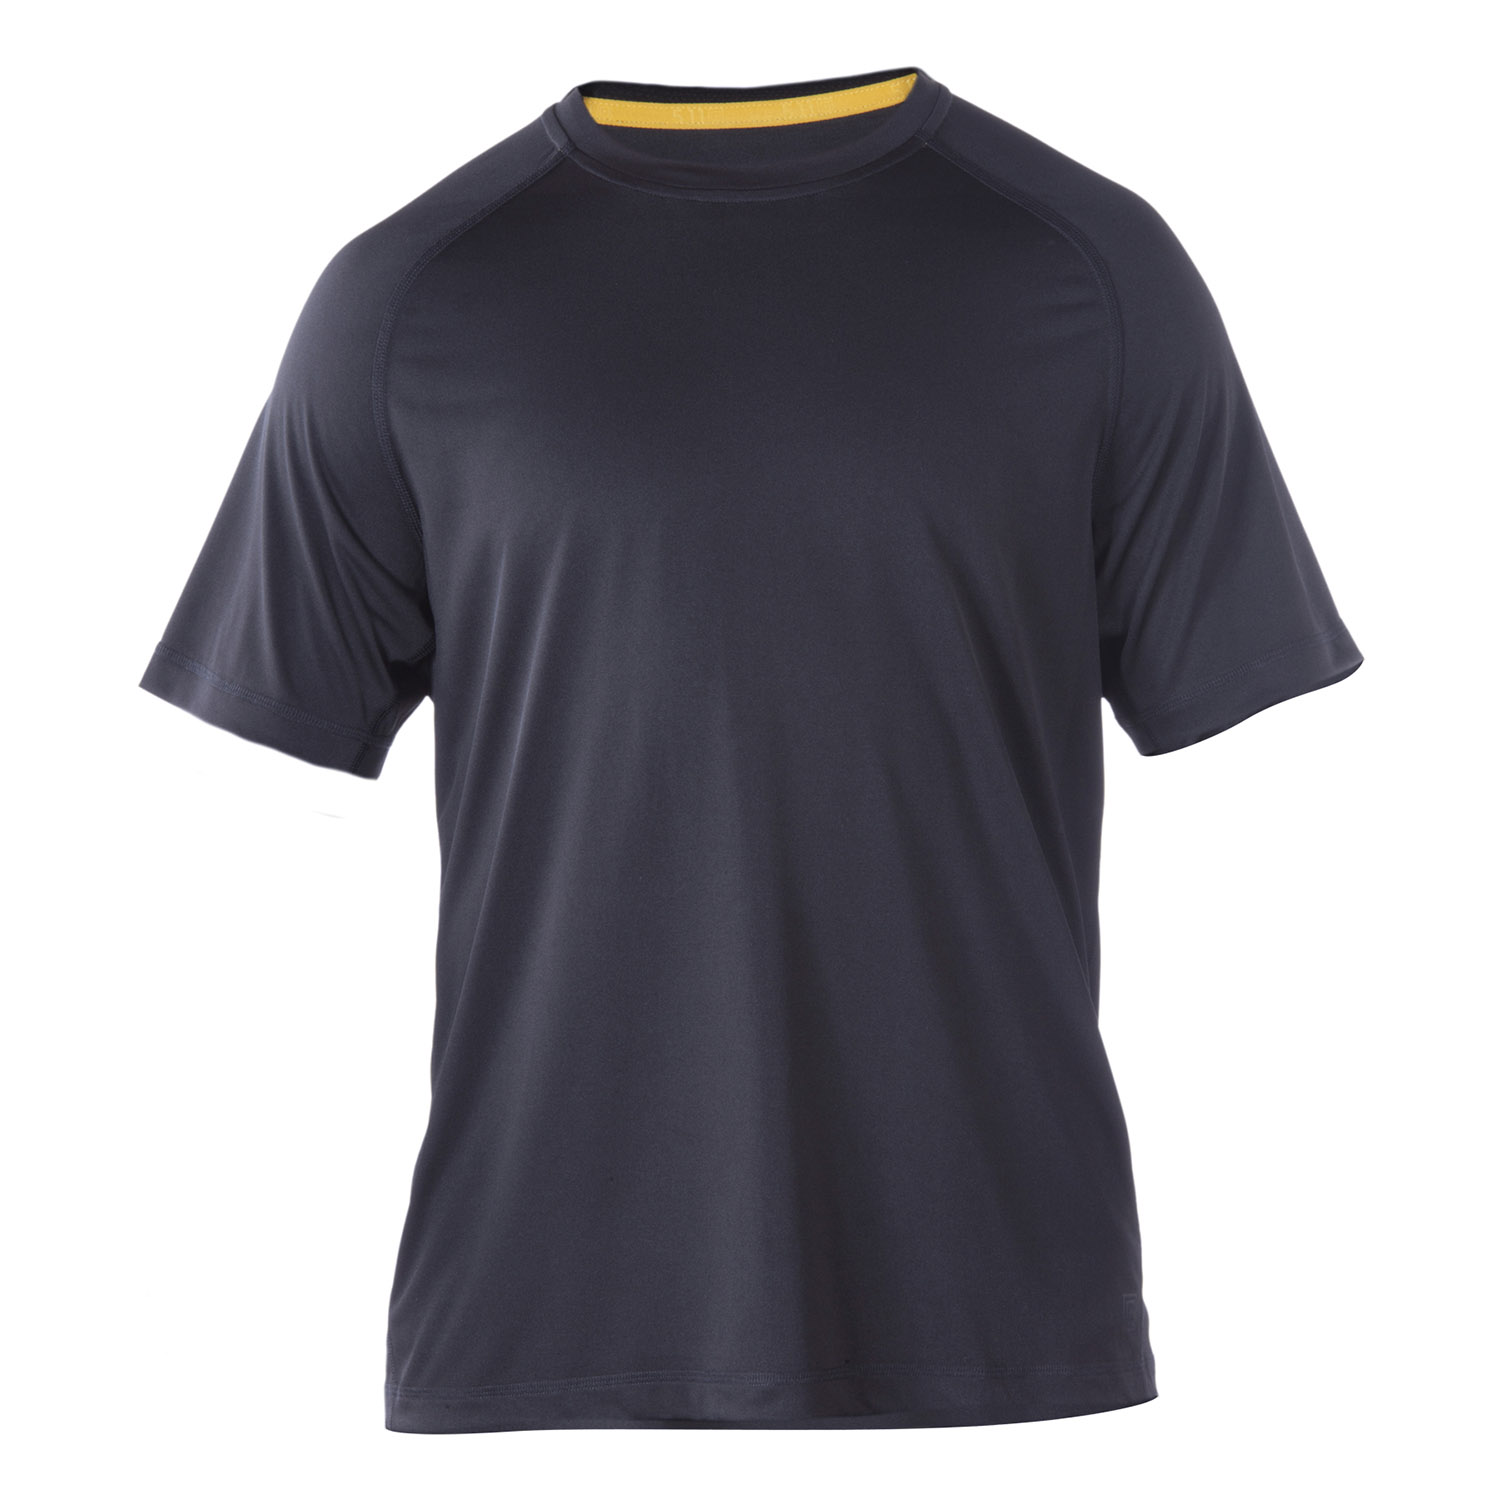 5.11 Tactical Men's Utility PT Shirt